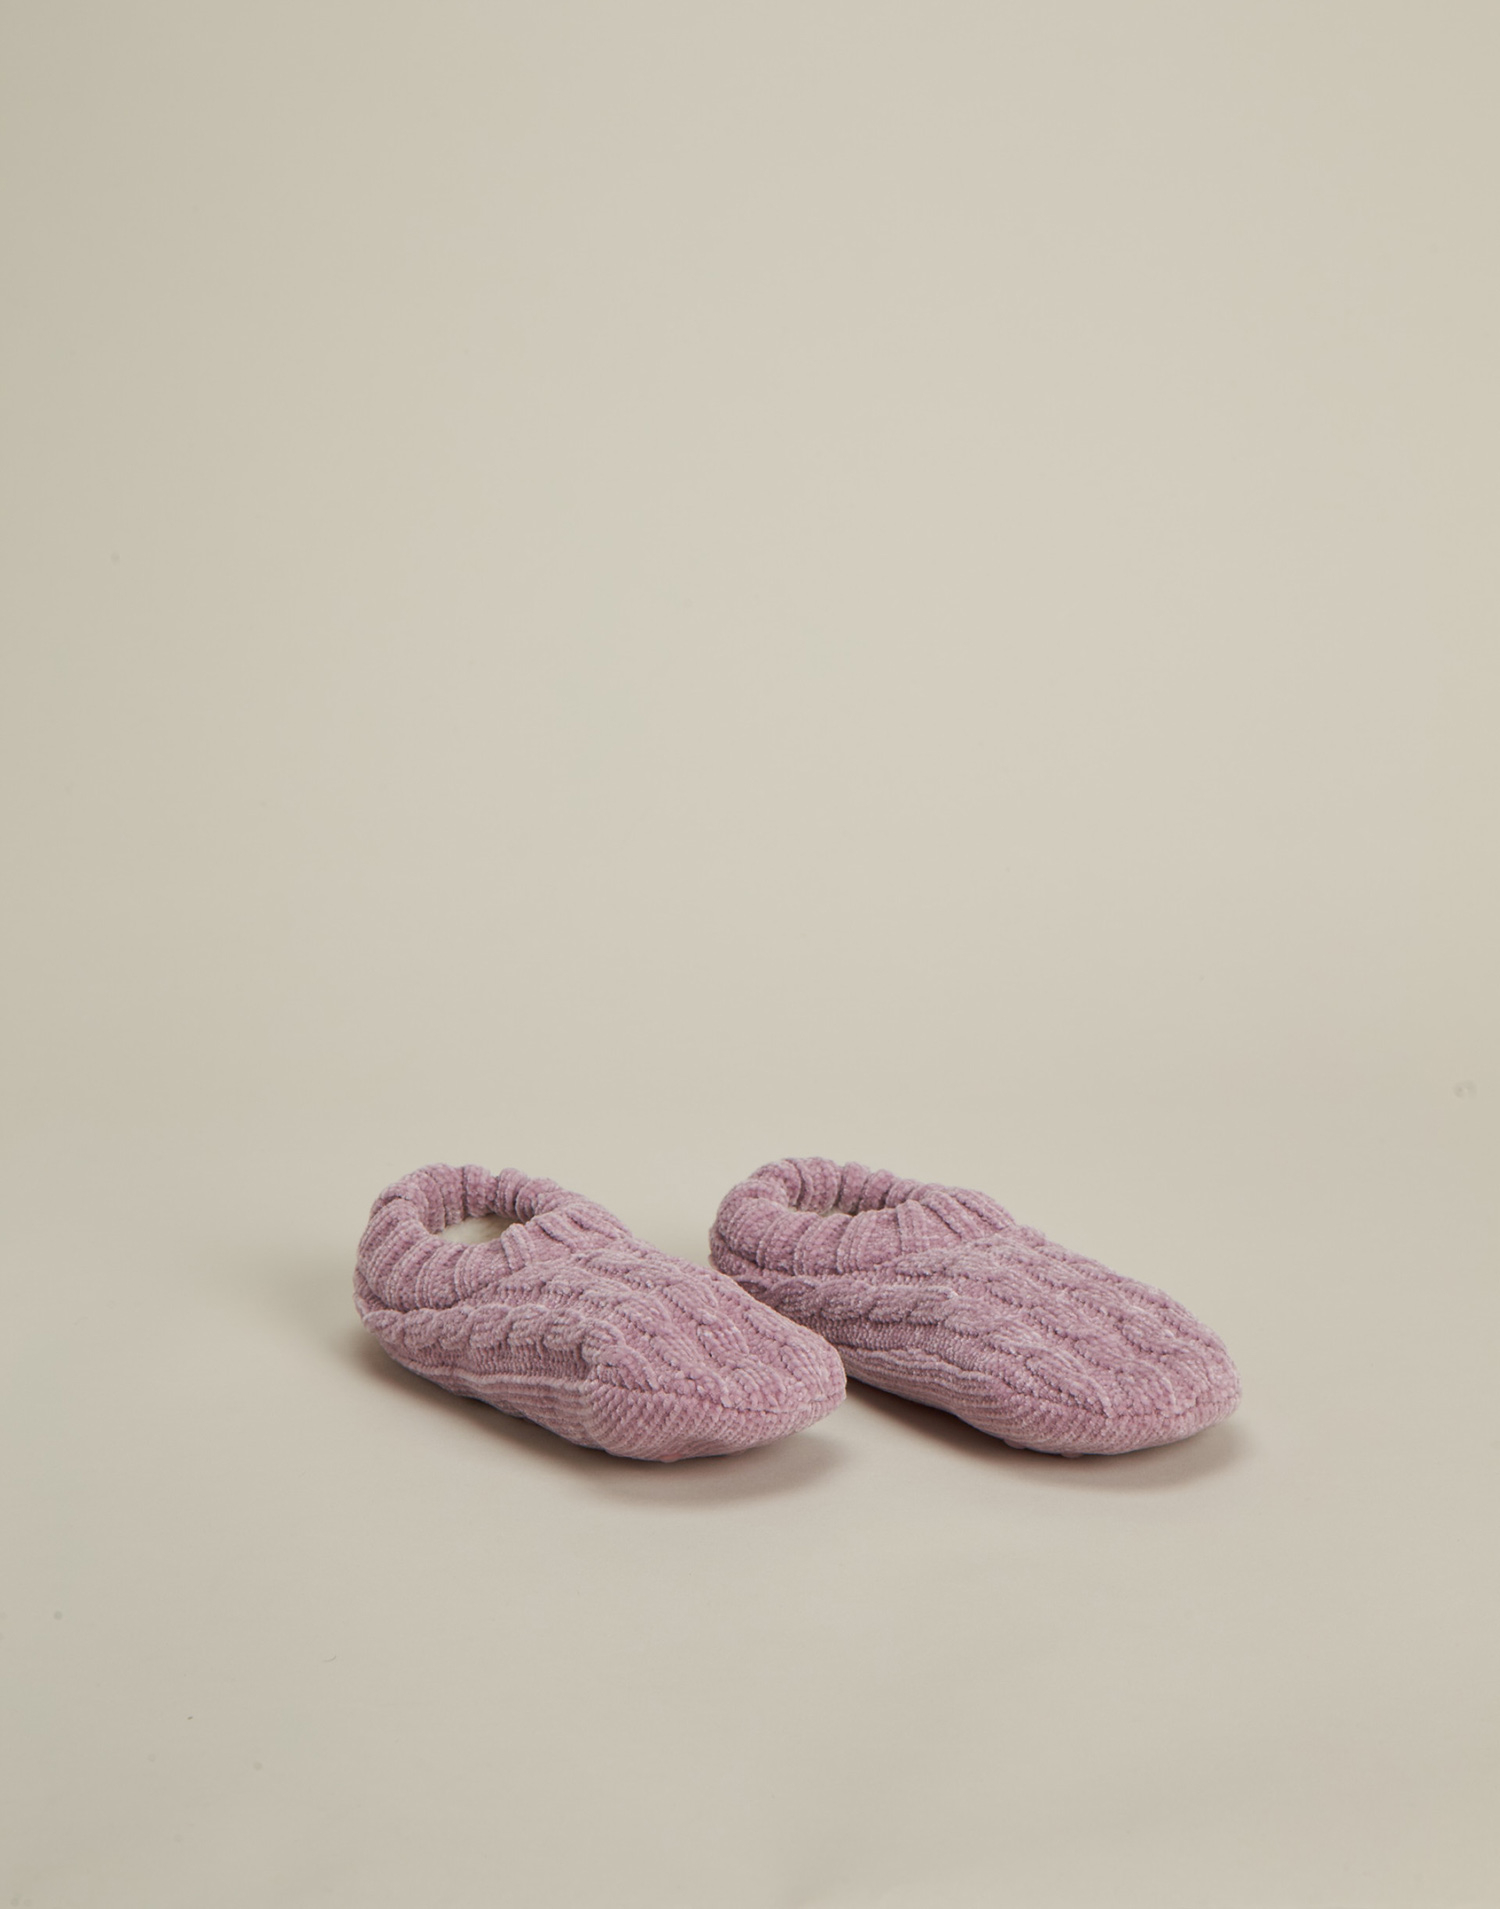 Braided knitted slippers